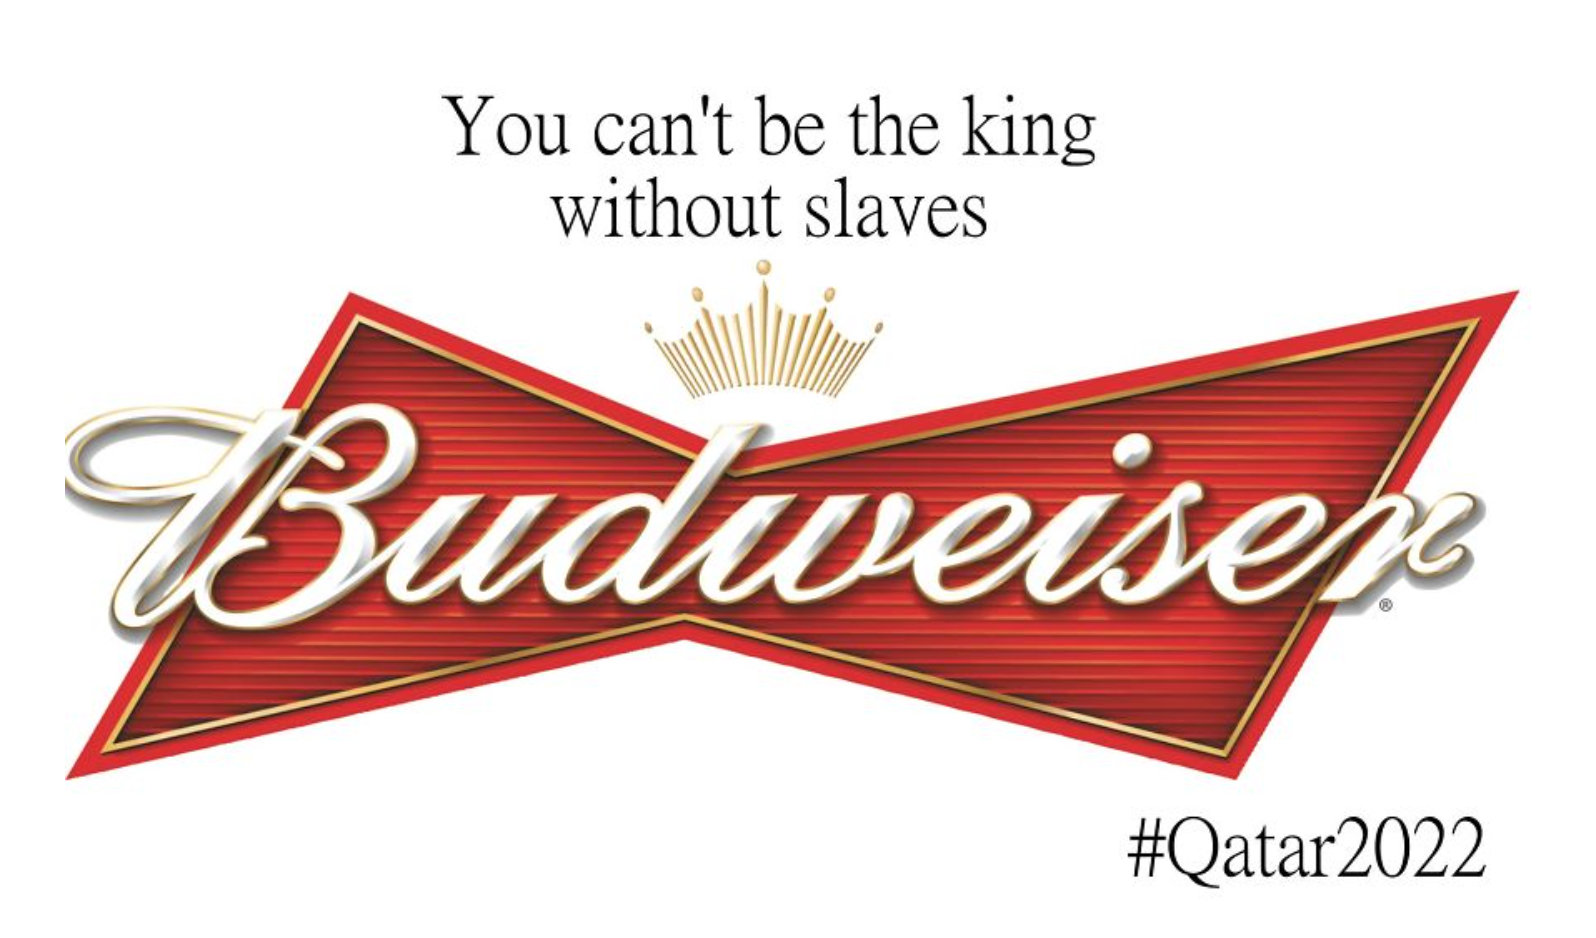 Budweiser king of slaves